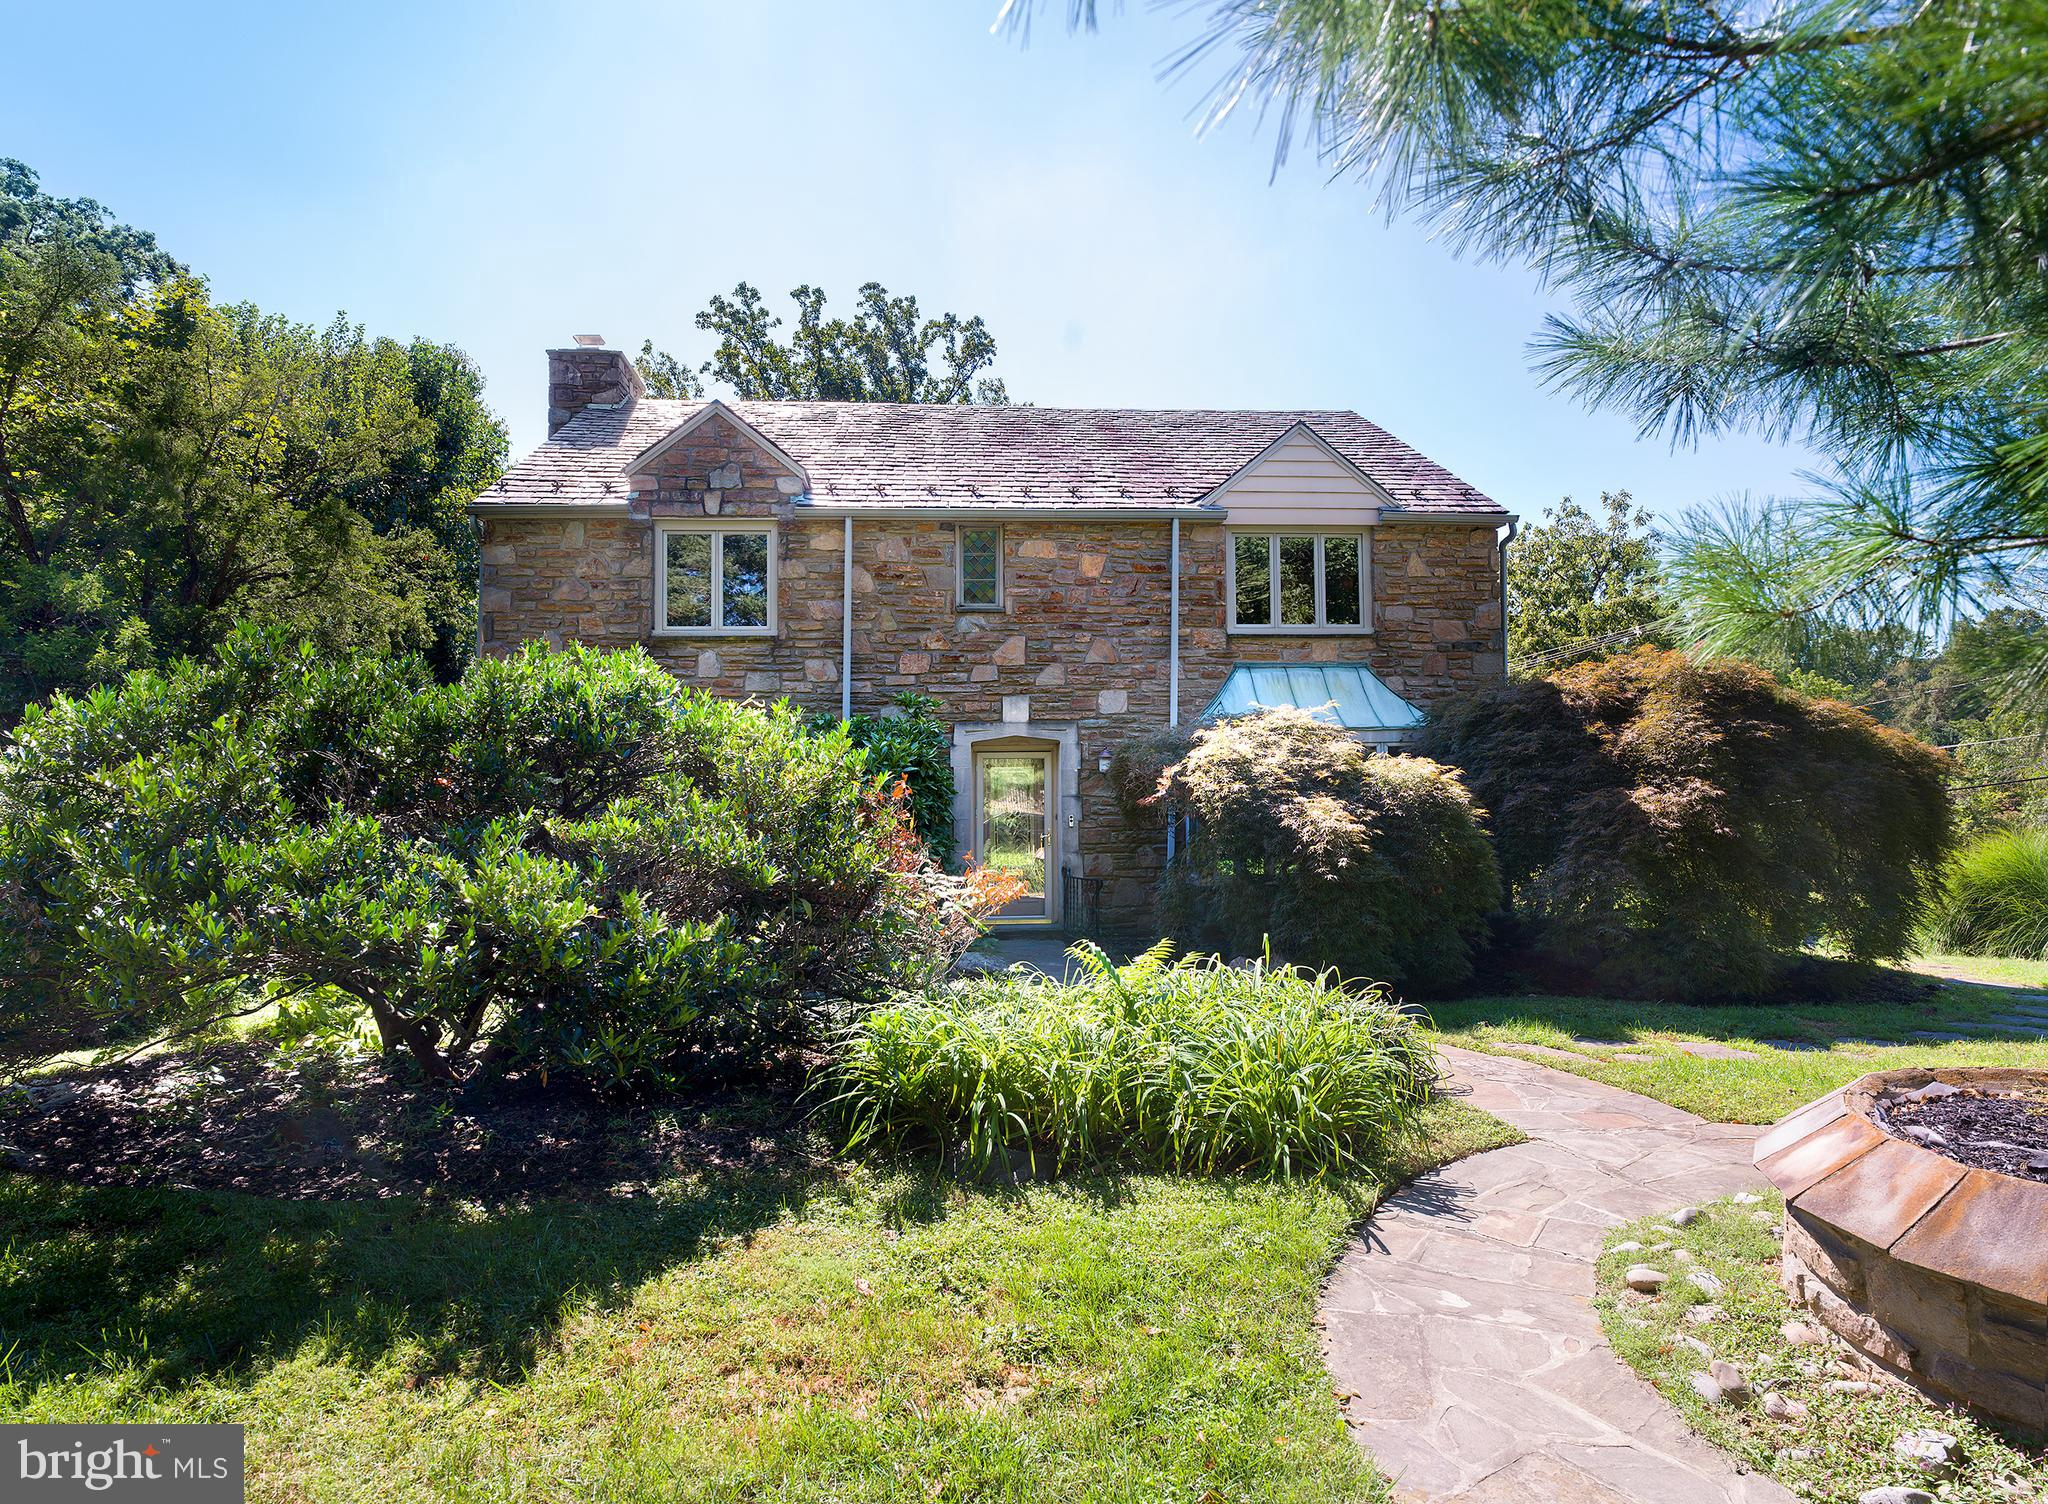 This charming, updated, center-hall stone colonial is situated on a secluded premier corner lot, in a quiet neighborhood filled with nature, yet so close to all major shops; Wynnewood Town Shopping Center, Whole Foods, Suburban Square, and Narberth, and with easy access Center City.    With a spacious living room with cozy fireplace to the left of the entrance, and a formal dining room to the right, 478 Ballytore Road is perfect for entertaining. The recently expanded, gourmet kitchen boasts timeless features, like wooden cabinetry, granite countertops and a large center island. Its modern amenities like stainless appliances, Viking cooktop, Electrolux refrigerator & freezer, and separate wine cooler/dry bar area, make this kitchen ideal for preparing and enjoying meals with family and friends. From the kitchen there is access to a welcoming family room, with custom built-ins, which opens to the sunroom with stone floors. The sunroom leads you to the private rear yard, with a large inground, heated saltwater pool and classic stone patio to enjoy all summer long.  On the second floor you will find the en-suite primary bedroom with a full wall of fitted closets. Plus there is more than enough room for family & guests across the three additional bedrooms and hall bathroom. The finished lower level is equipped with a laundry room, powder room, dry bar with cup dishwasher,bonus room, and access to the attached, four-car garage.  All of this with many recent renovations, including a newly installed 5-ton cooling system, tankless water heating system, pool with recent conversion to salt water and new pump, a remodeled sunroom, a newly installed reverse osmosis drinking water system, and new flooring throughout the second floor.  This home has it all, including ample storage and located within the Lower Merion School District.